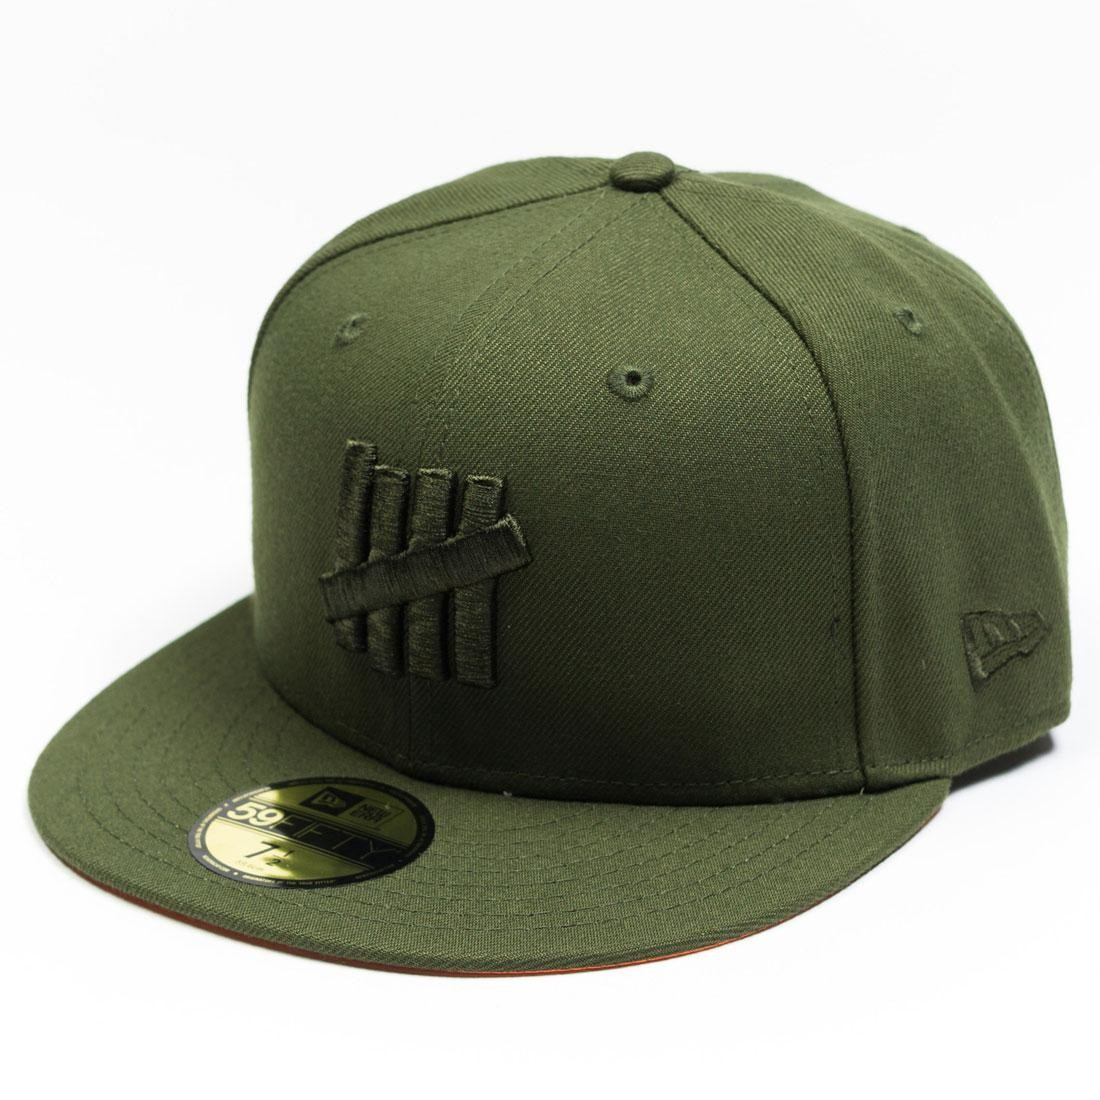 Undefeated x New Era Eject Fitted Cap green olive f7b4aa37911